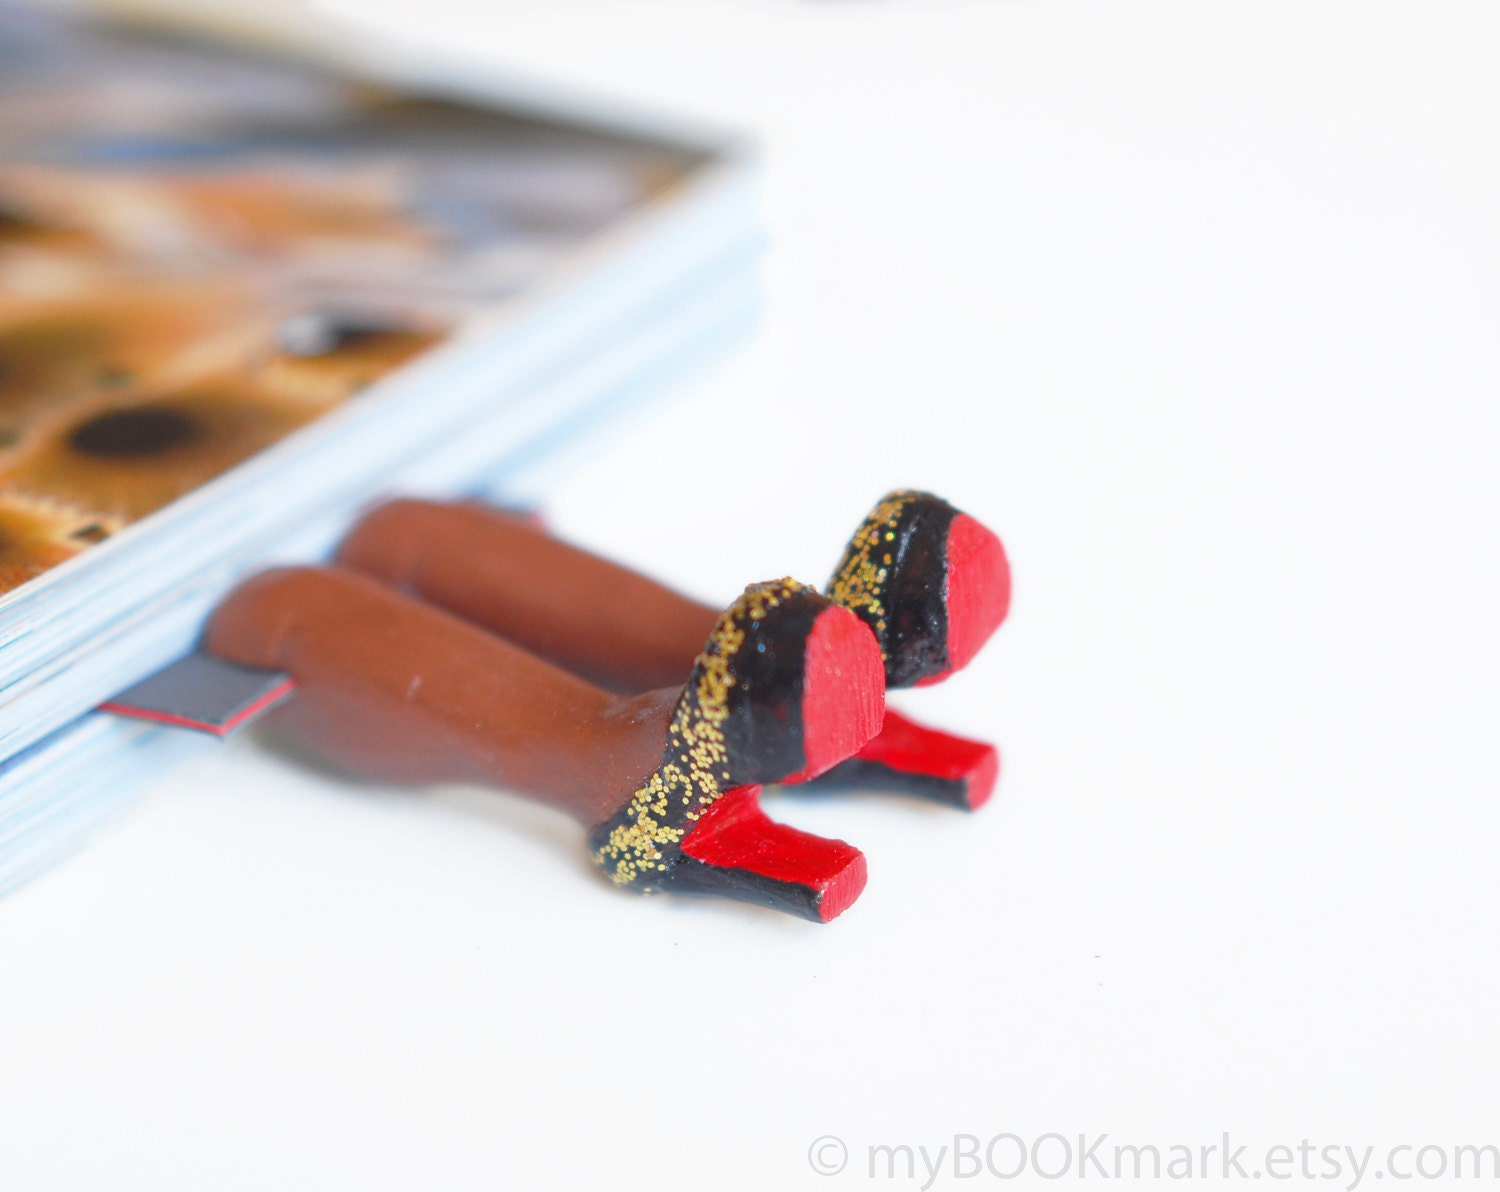 Louboutin shoes bookmark with golden glitter. Chocolate brown skin. Elegant fashion gift. Black, gold and red shoes. oht - MyBookmark